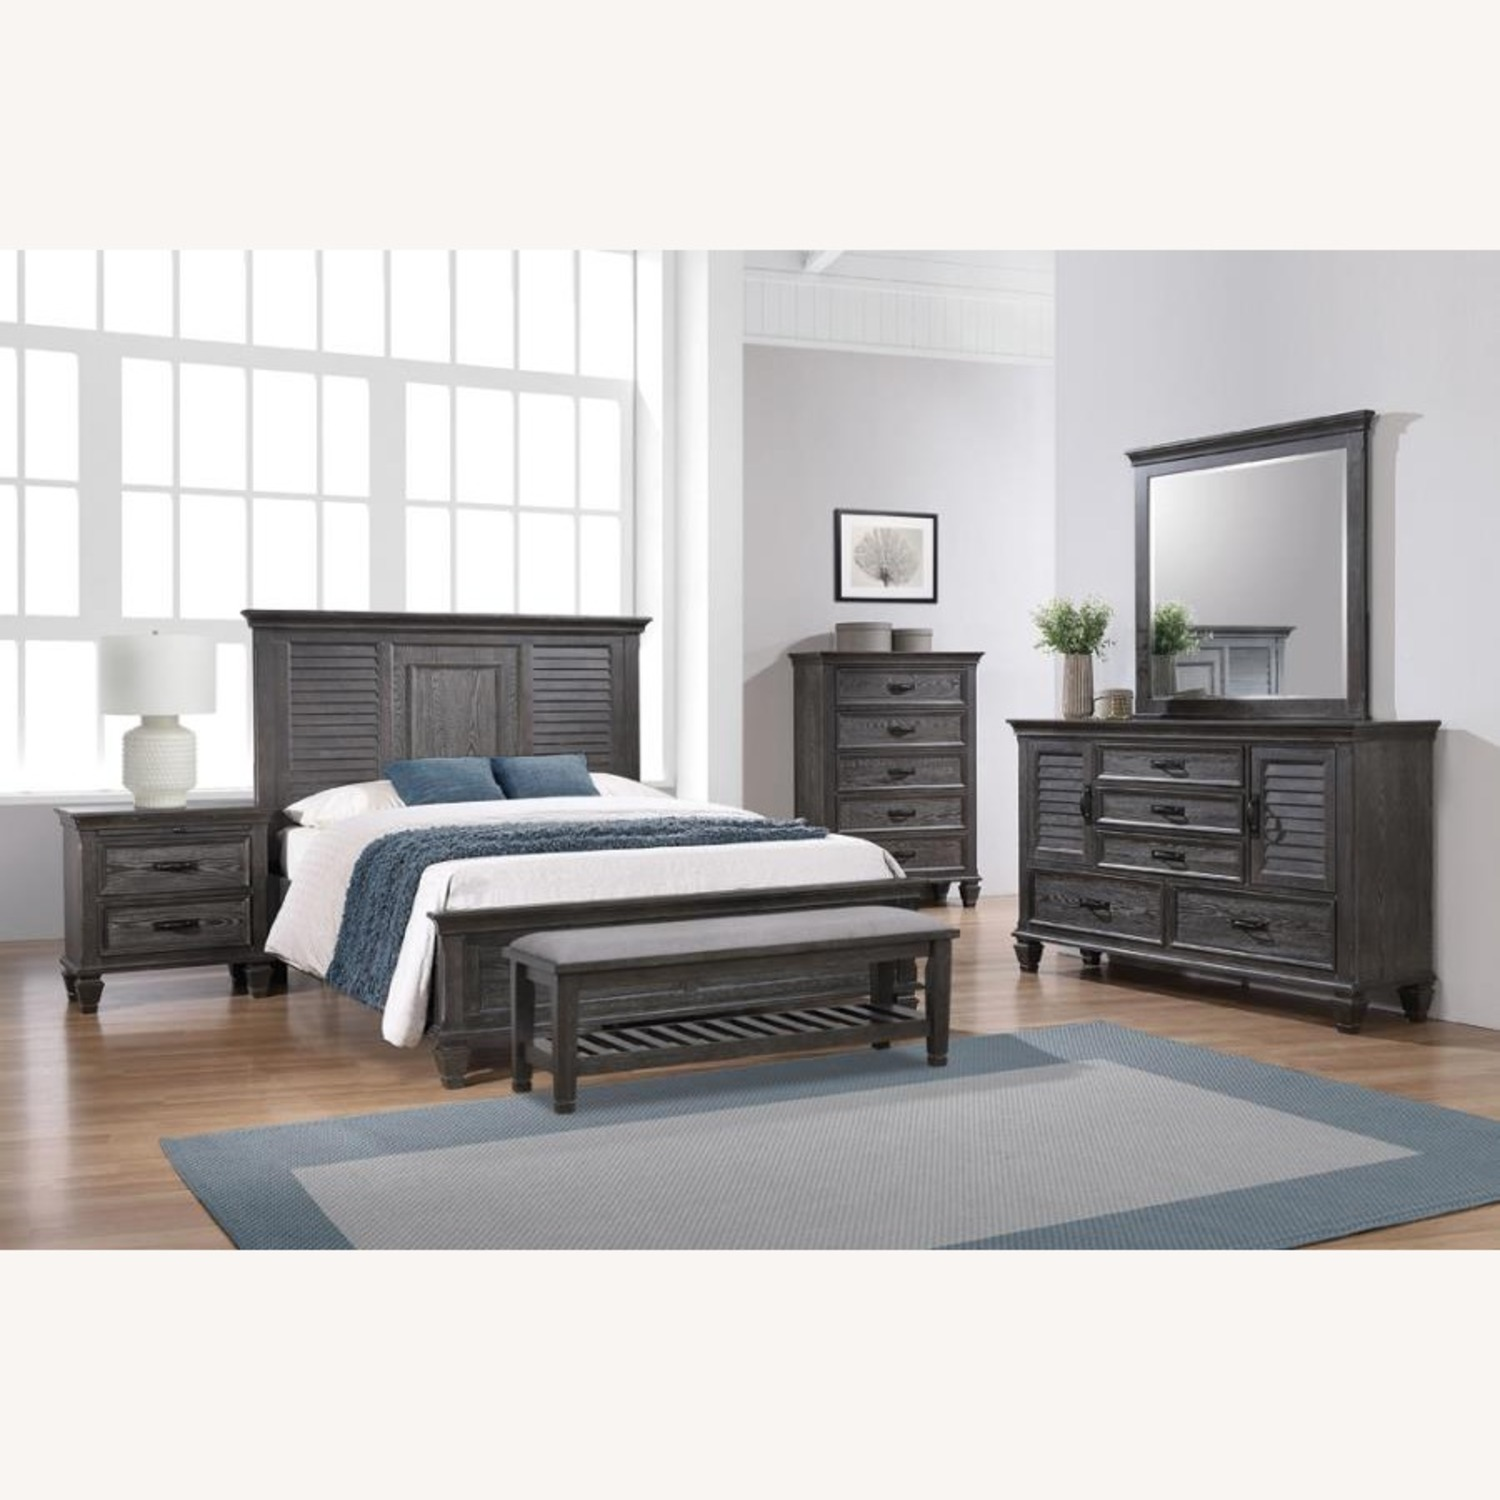 Queen Bed In Trendy Weathered Sage Finish - image-2